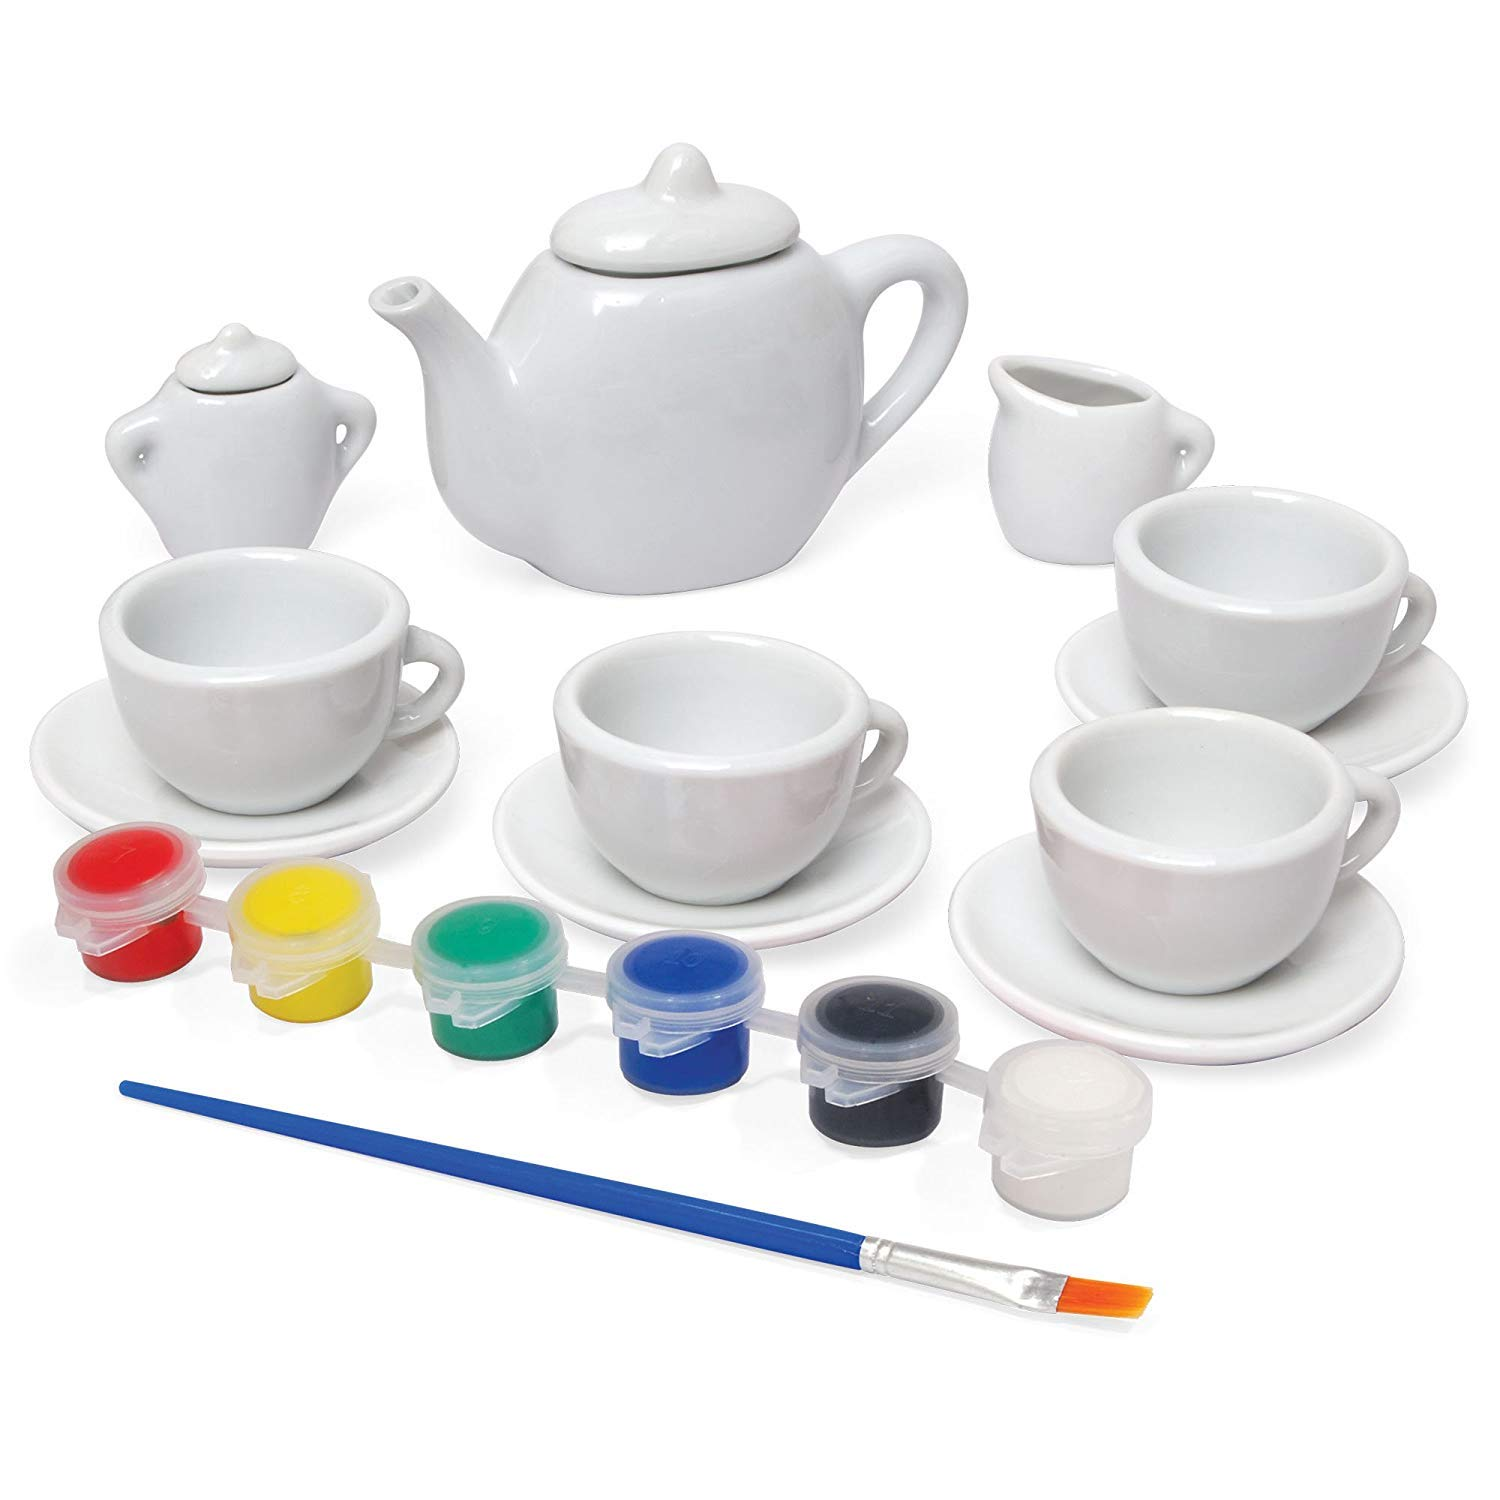 13 Pieces Paint Your Own Porcelain Ceramic Tea Set Girls Kids Kitchen Playset Tea Party Children Activities, Party Favors, Home Decoration coolbitz 1176844